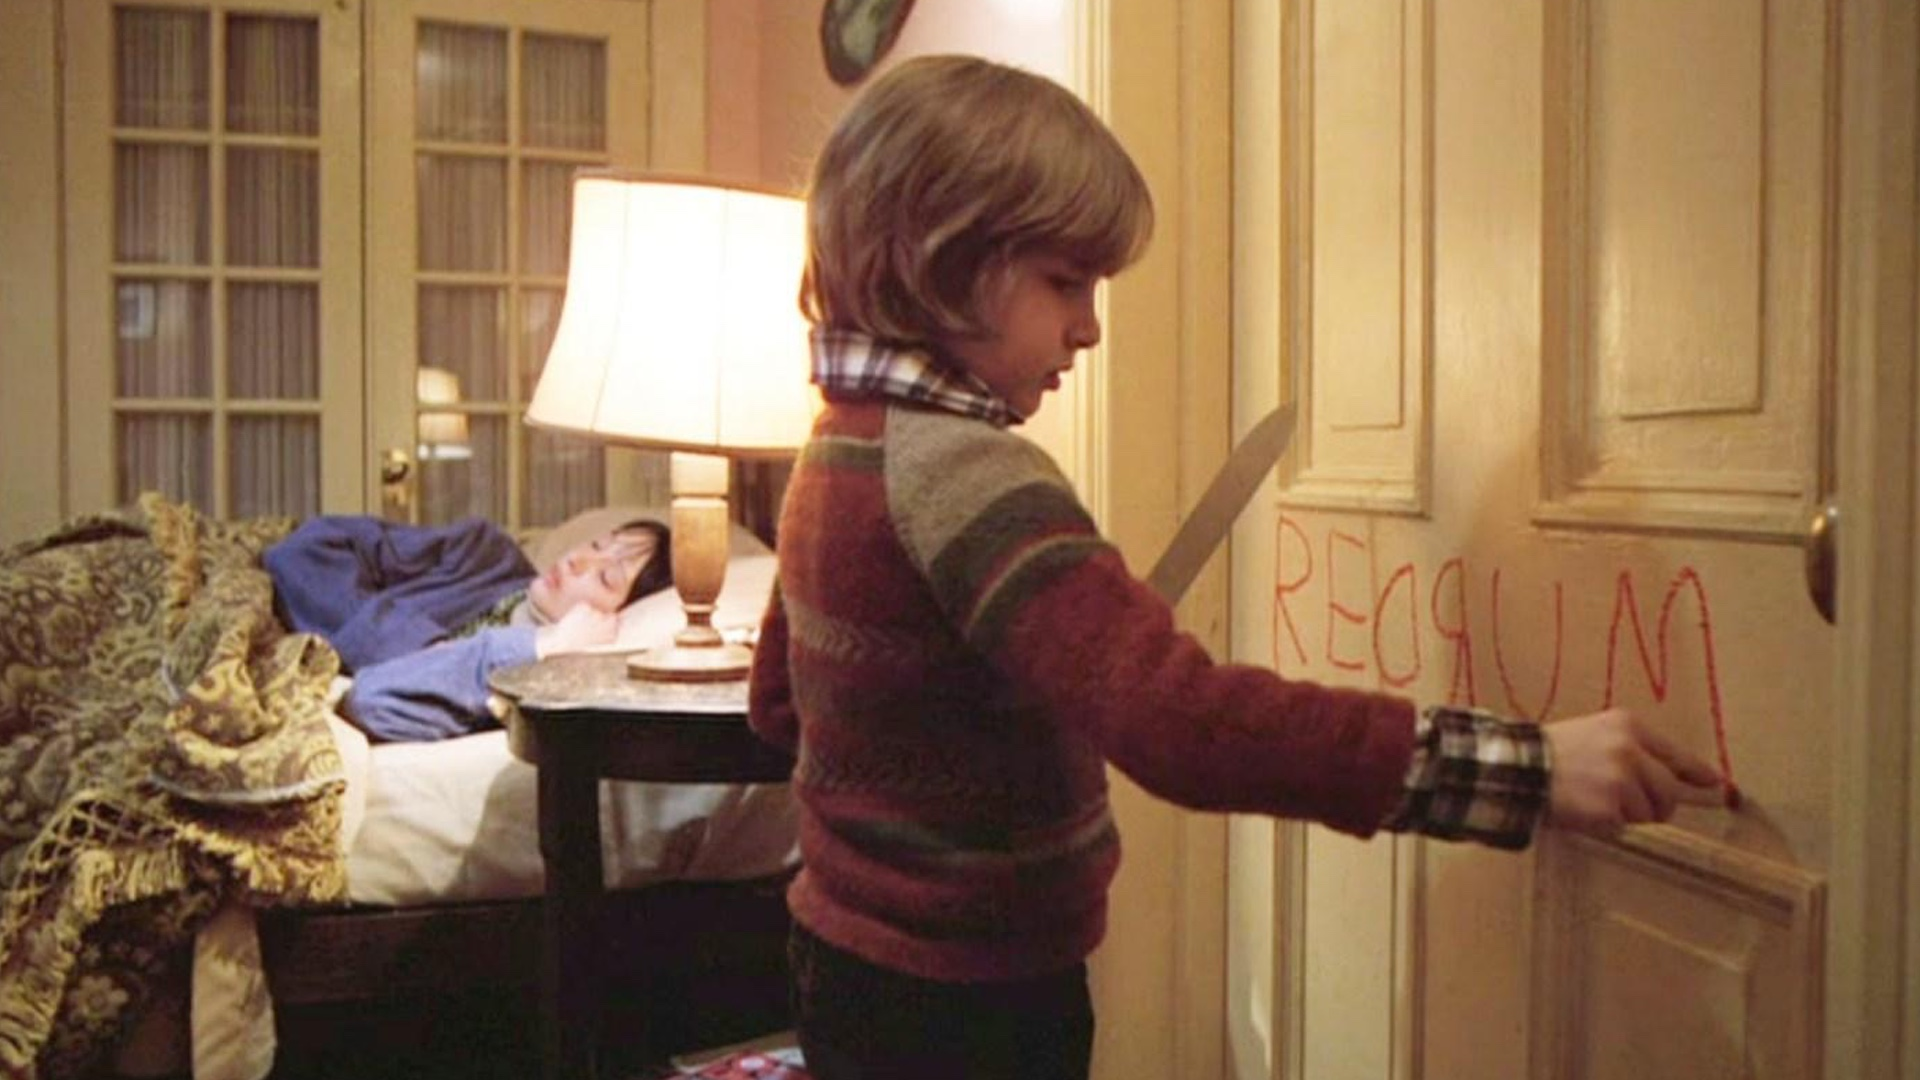 first-footage-from-the-shining-sequel-doctor-sleep-screened-at-cinemacon-social.jpg